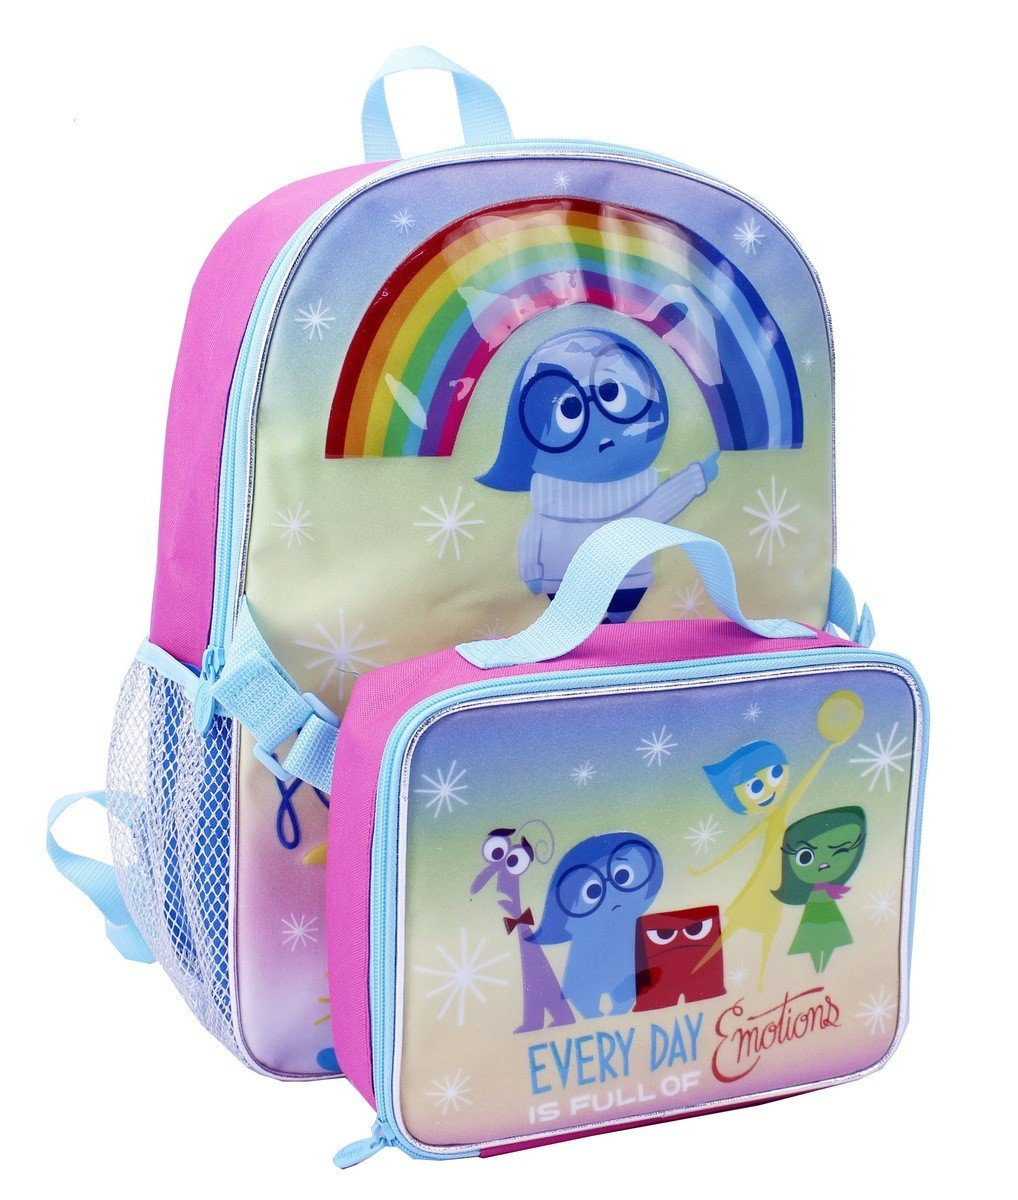 Disney/Pixar INSIDE OUT Pastel Lunch Bag & Backpack Combo - All five emotions, rainbow, and Sadness highlight.